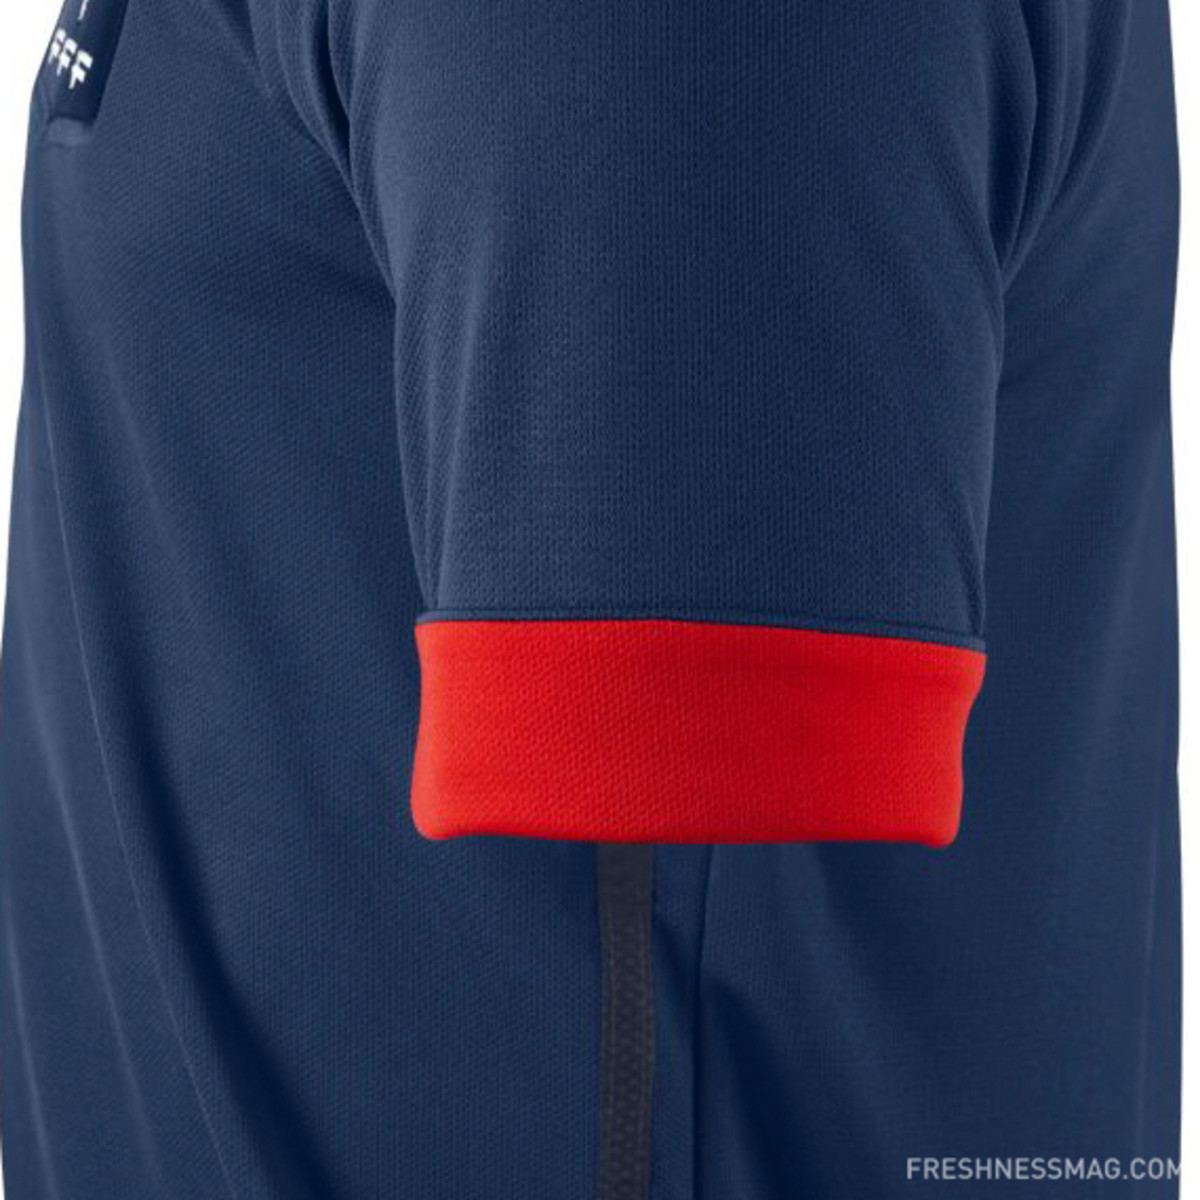 nike-french-football-federation-official-jersey-09